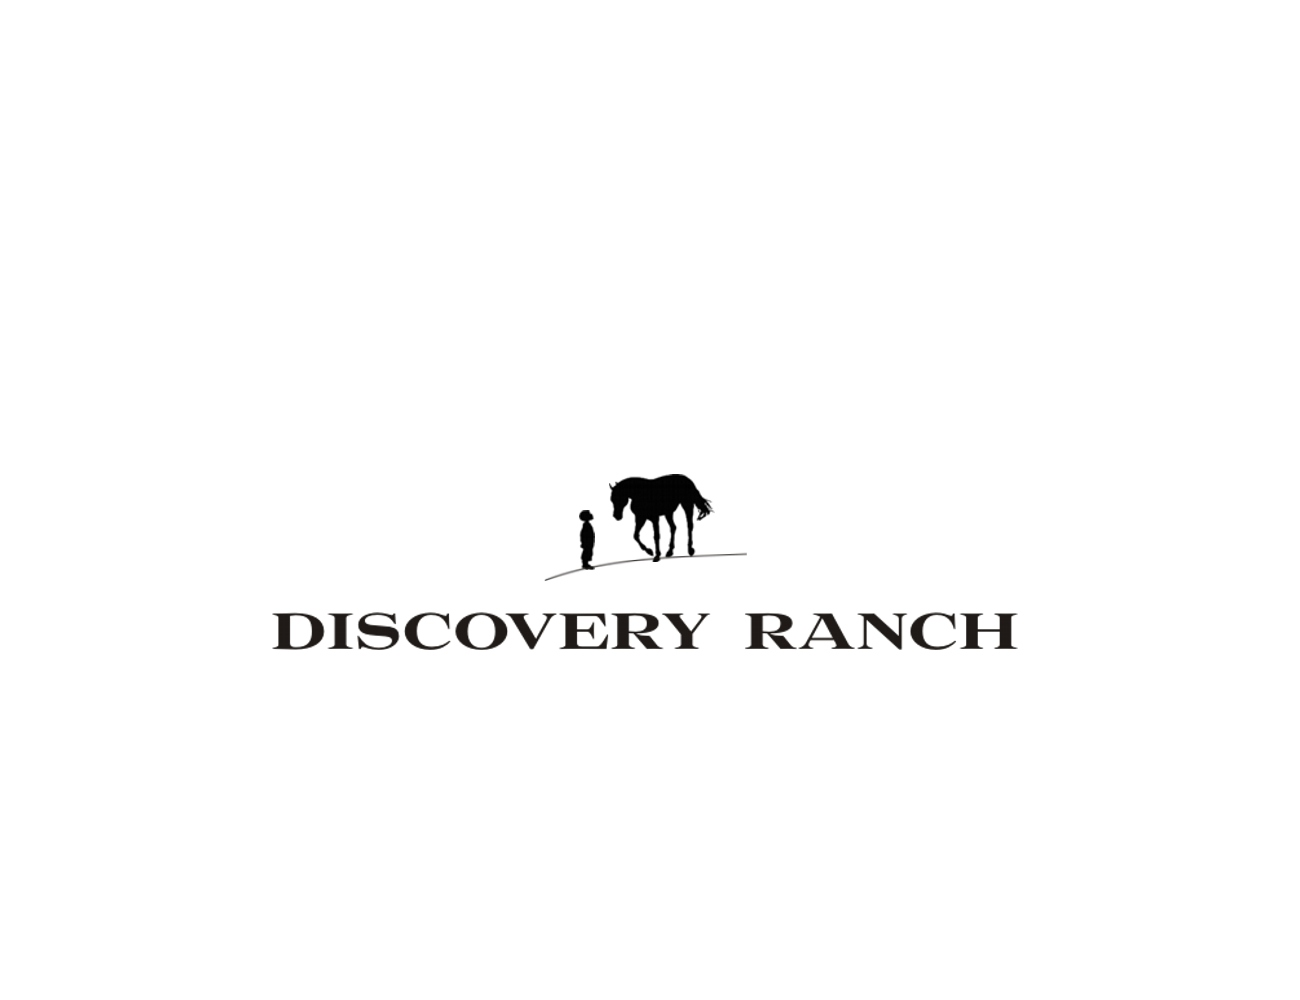 Logo Design by Q_Division_Designs - Entry No. 51 in the Logo Design Contest Creative Logo Design for Discovery Ranch.